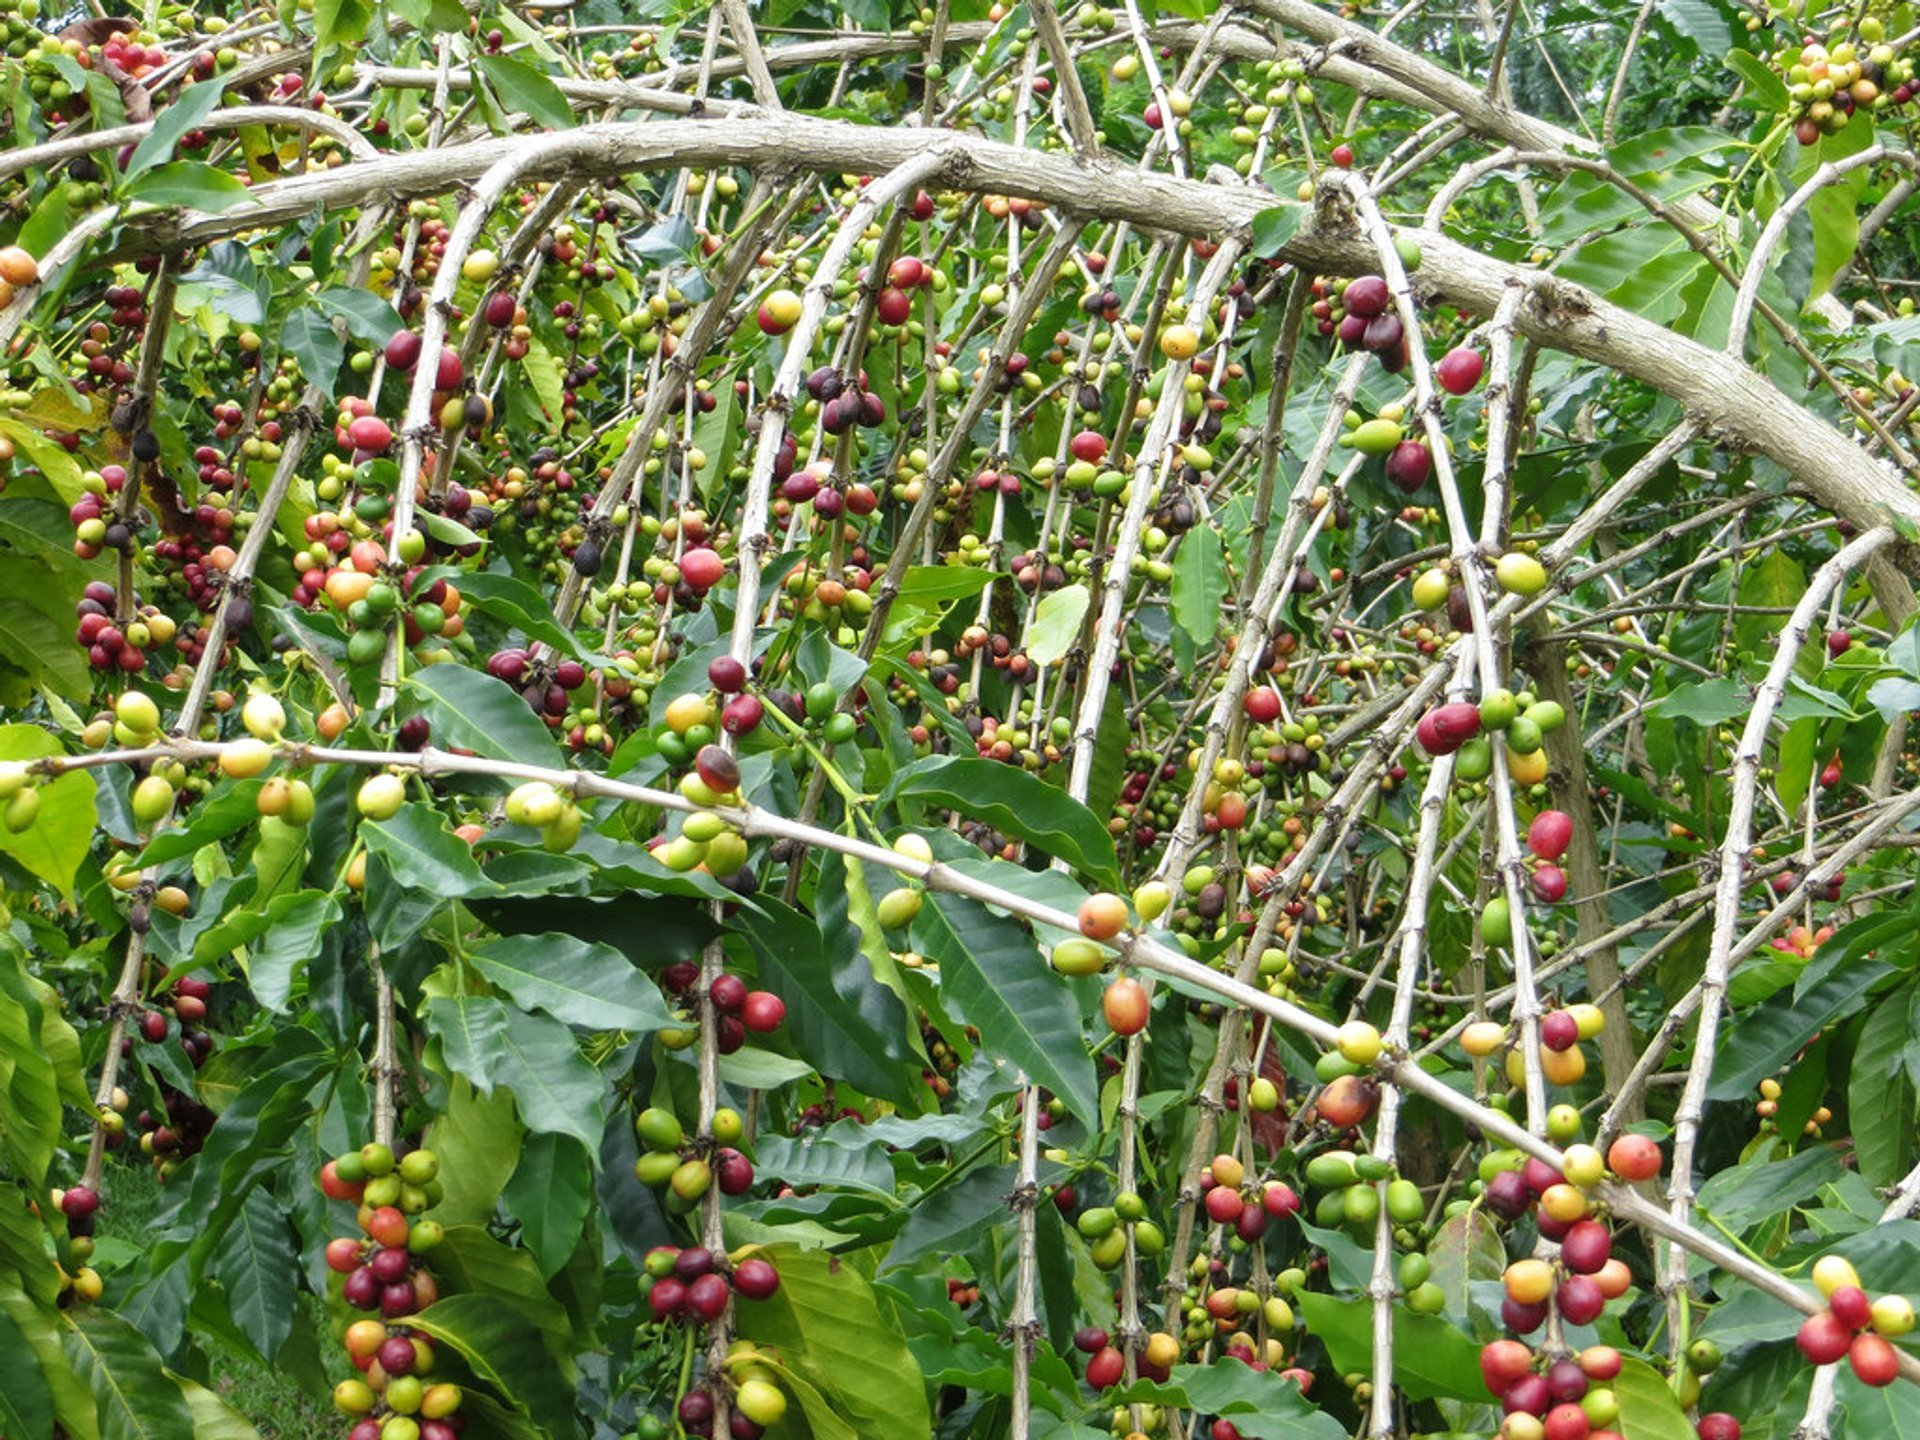 Kona Coffee Harvest in Hawaii - Best Season 2019